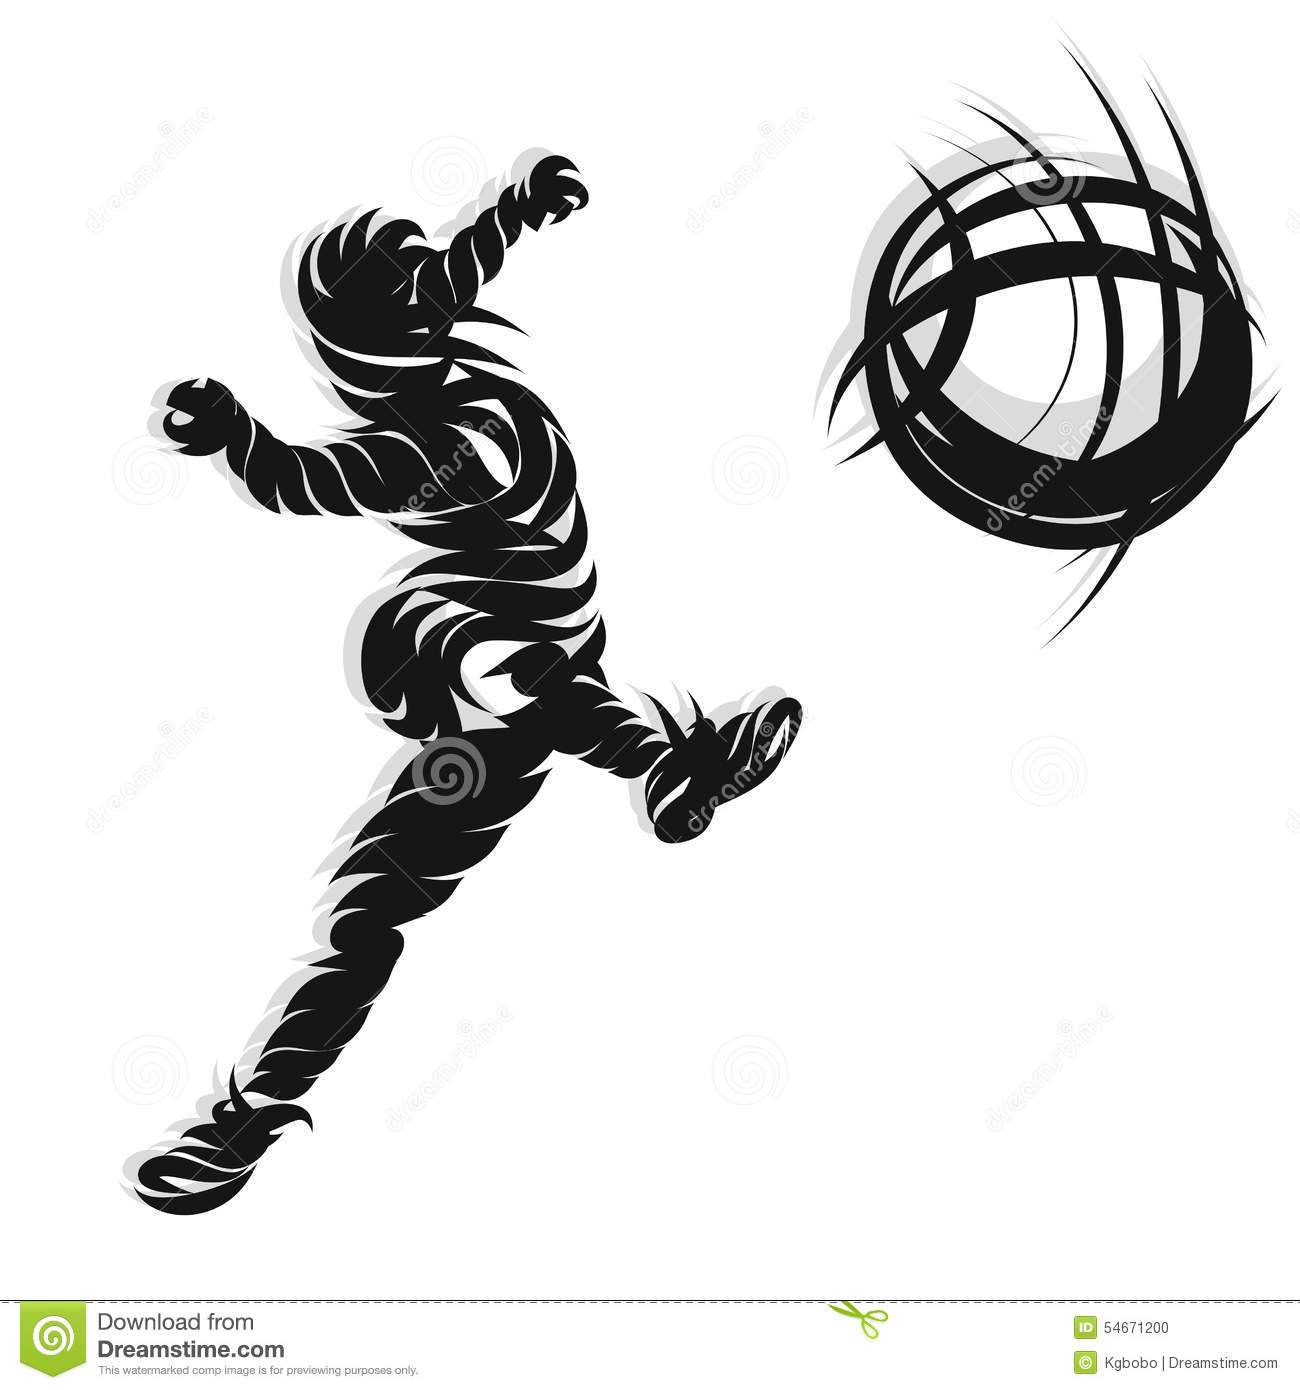 Soccer Shooting Ink Style Stock Vector Illustration Of